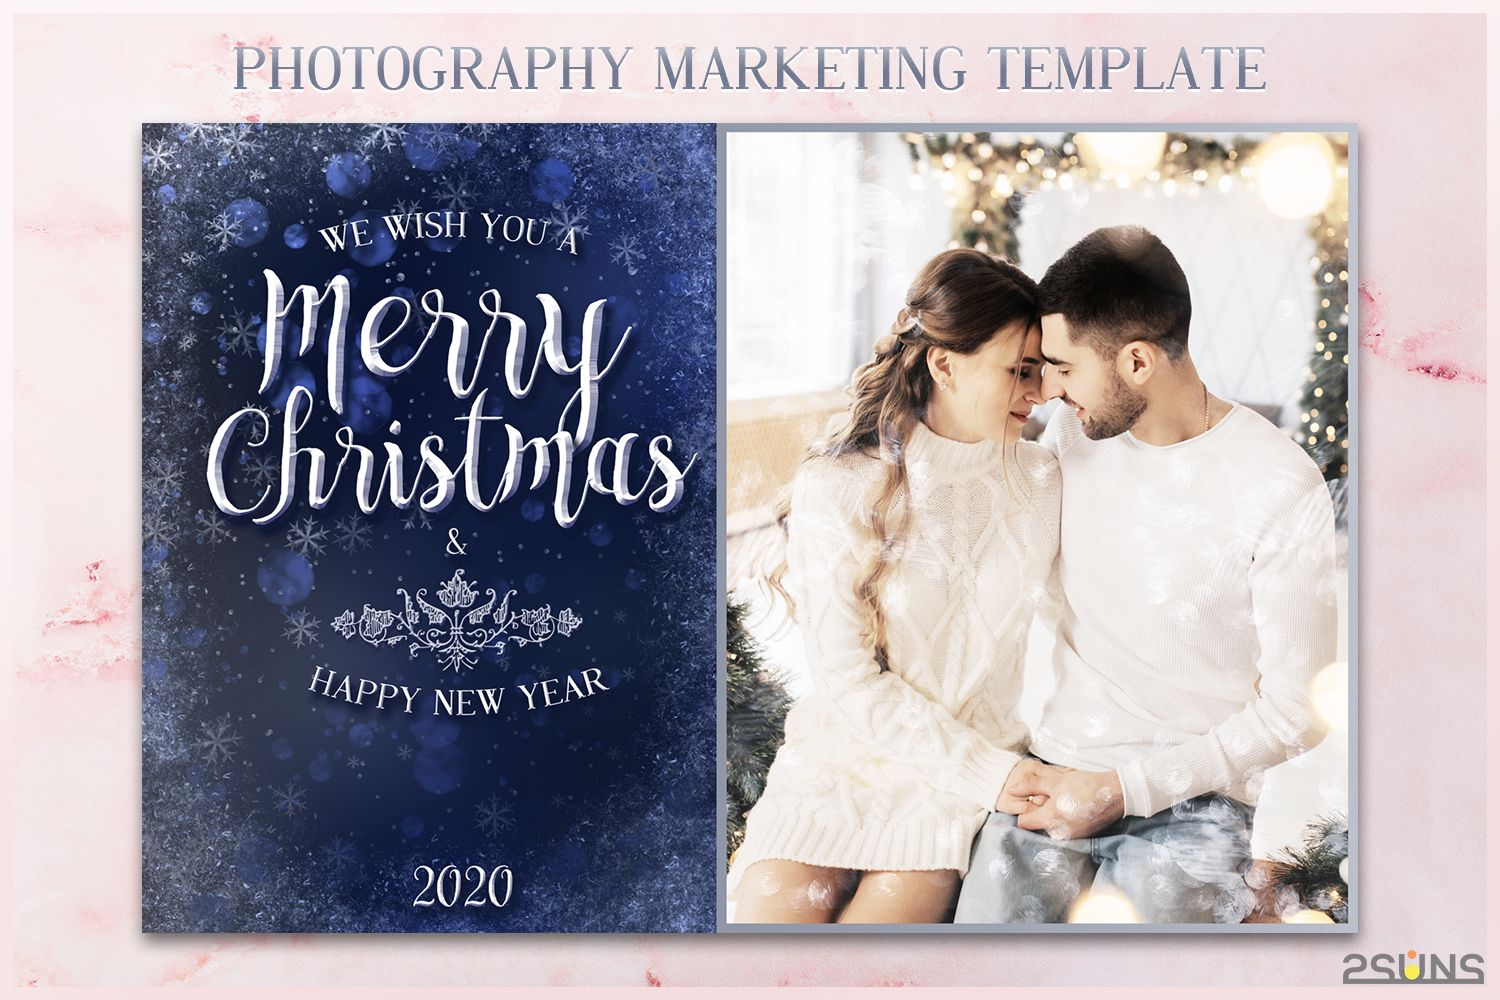 Christmas Card Template Photoshop Template 5x7 Flat Card Regarding Christm Christmas Photo Card Template Photo Card Template Photoshop Christmas Card Template